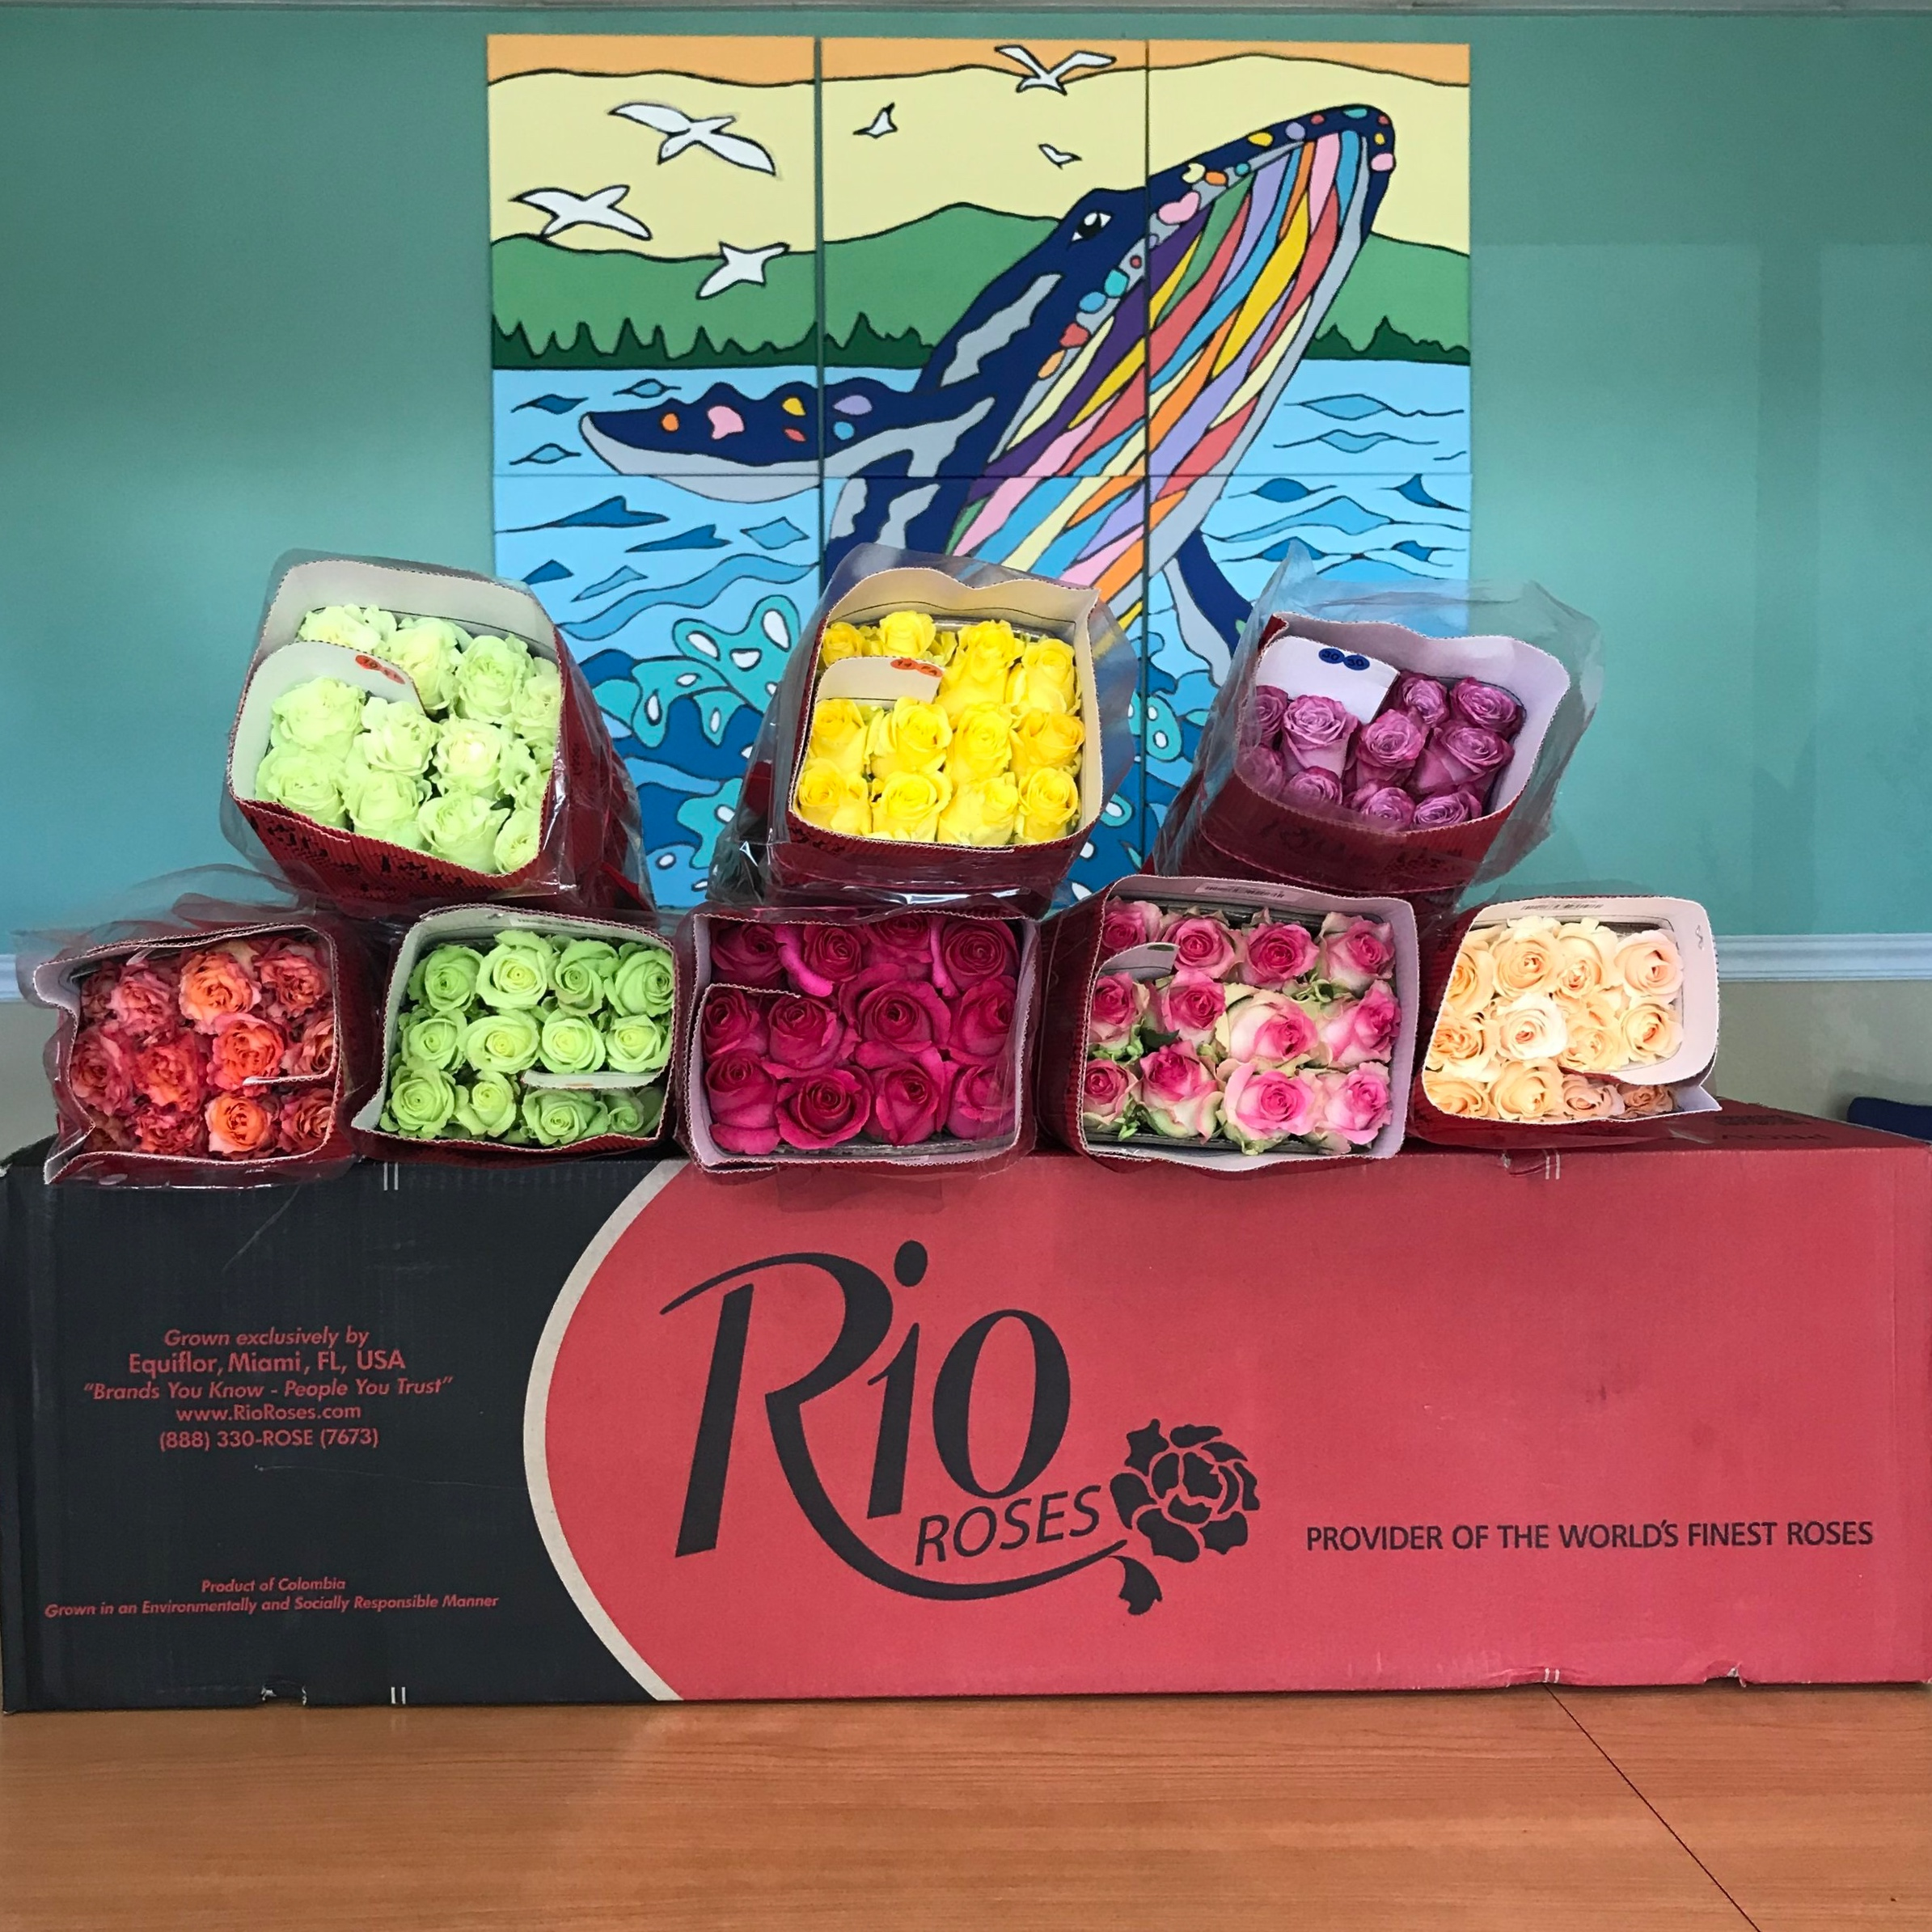 Rio Roses donates over 200 roses to the women of The Lodge for Valentine's Day